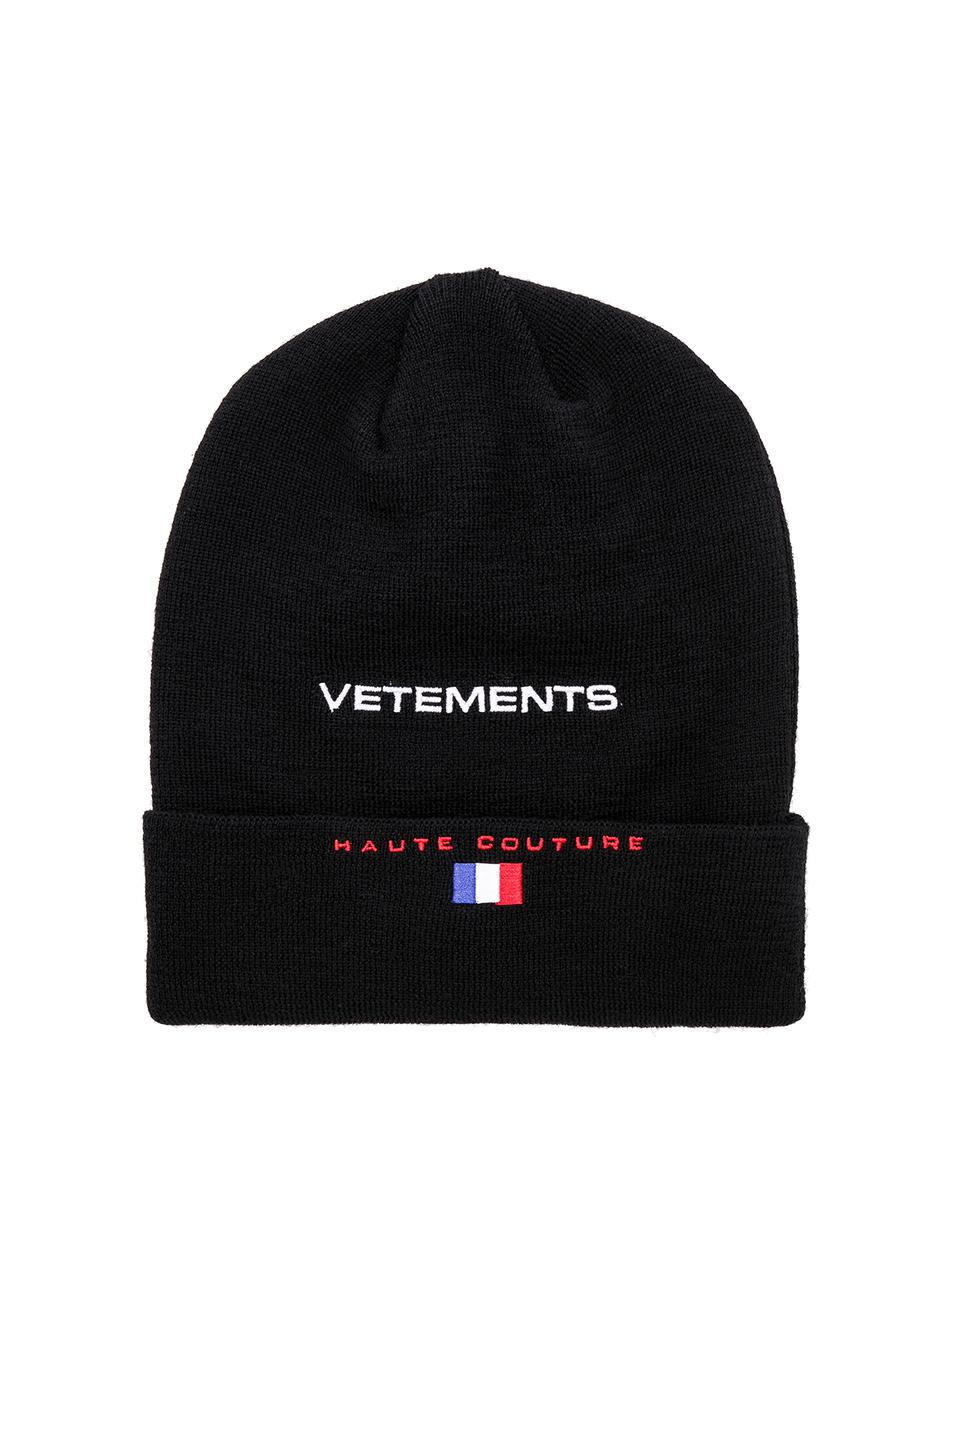 4fadd4b1b49 Lyst - Vetements Reebok Beanie in Black